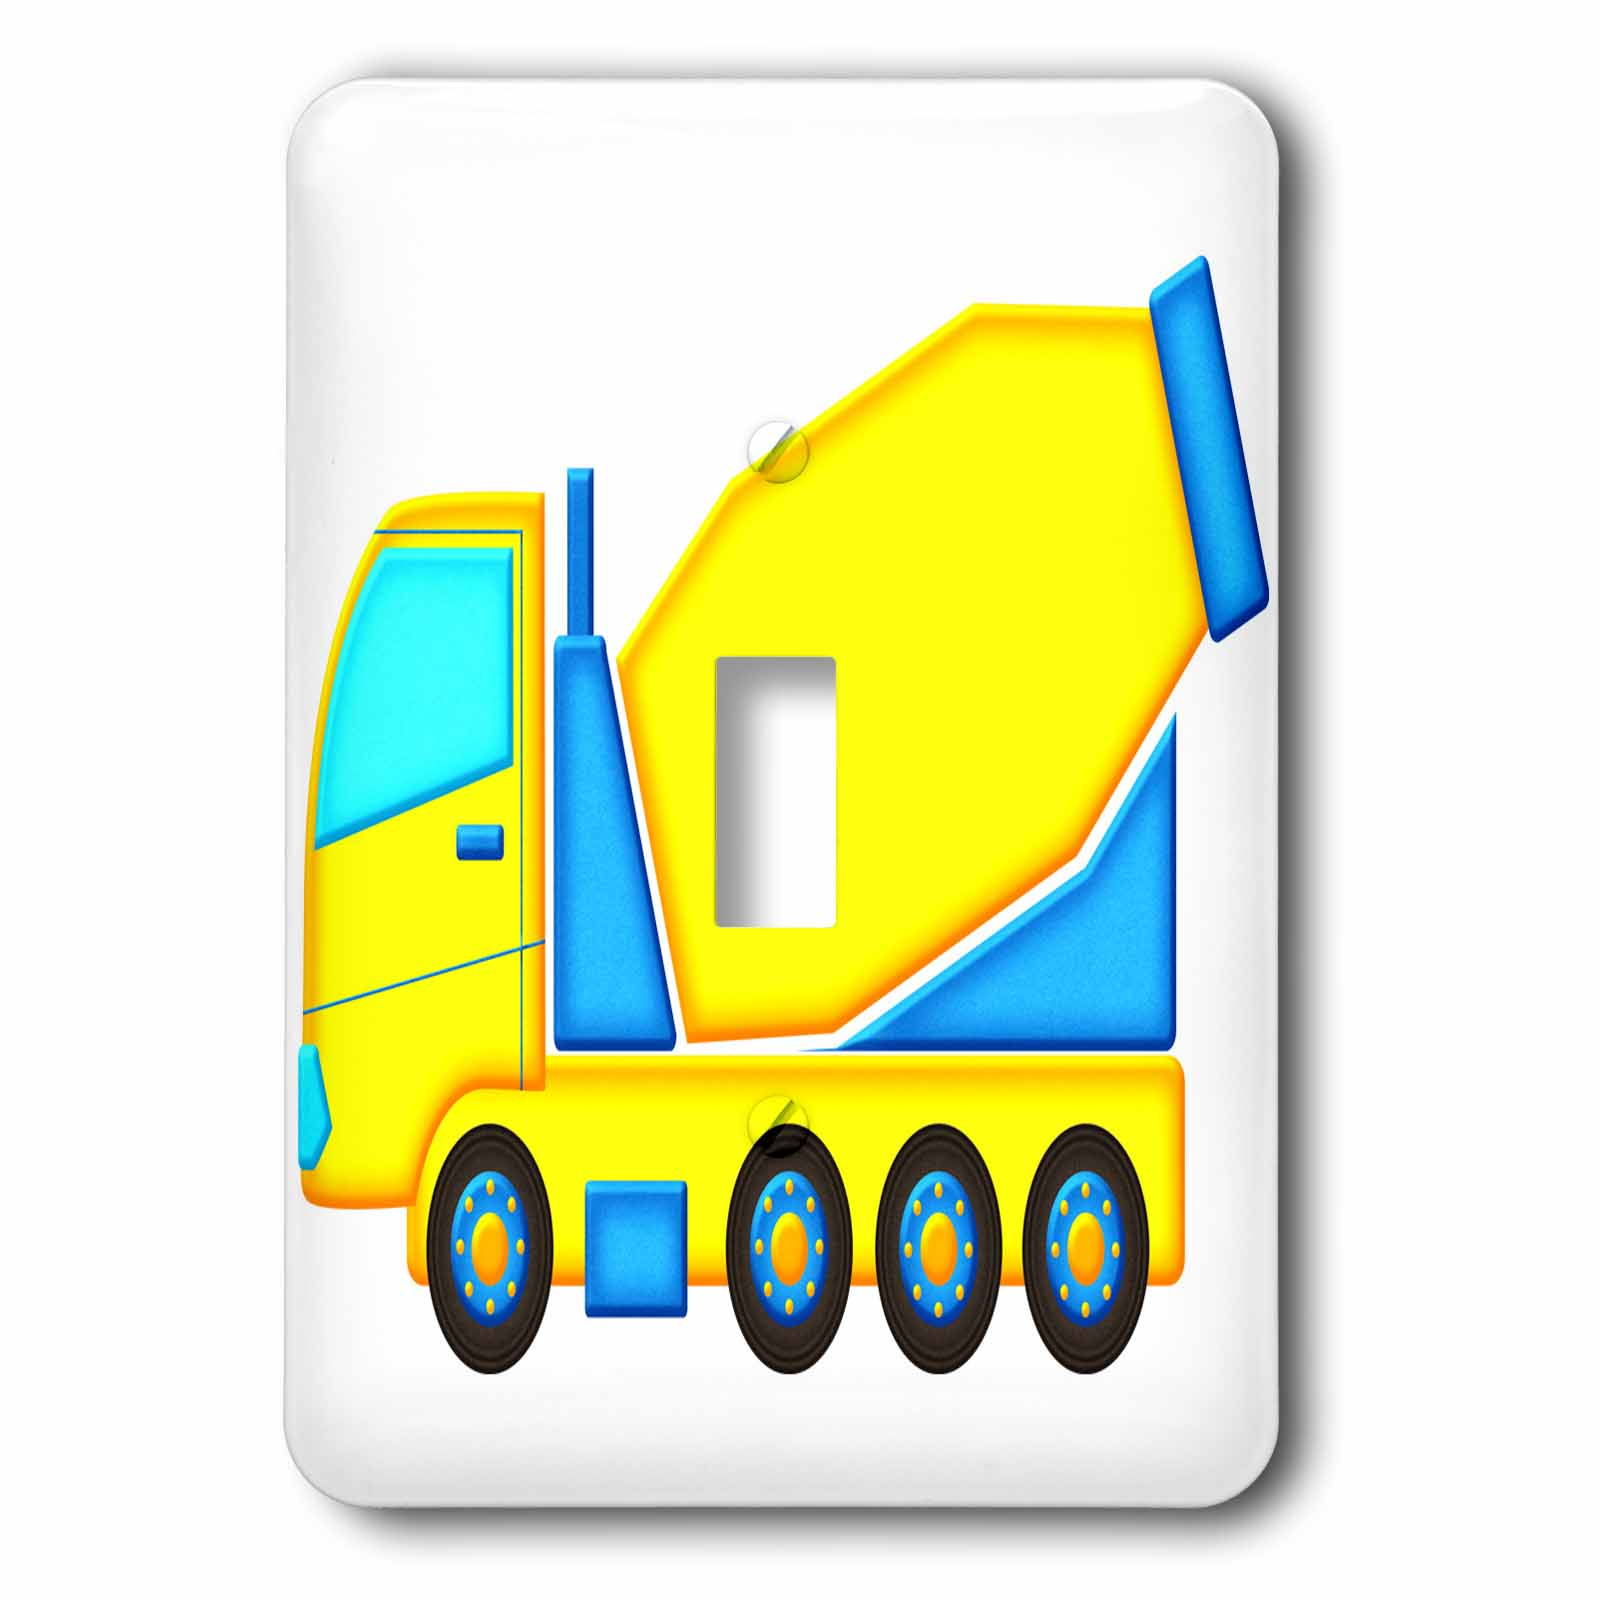 3dRose Cute Boys Blue and Yellow Cement Mixer Truck Graphic, Single Toggle Switch by 3dRose